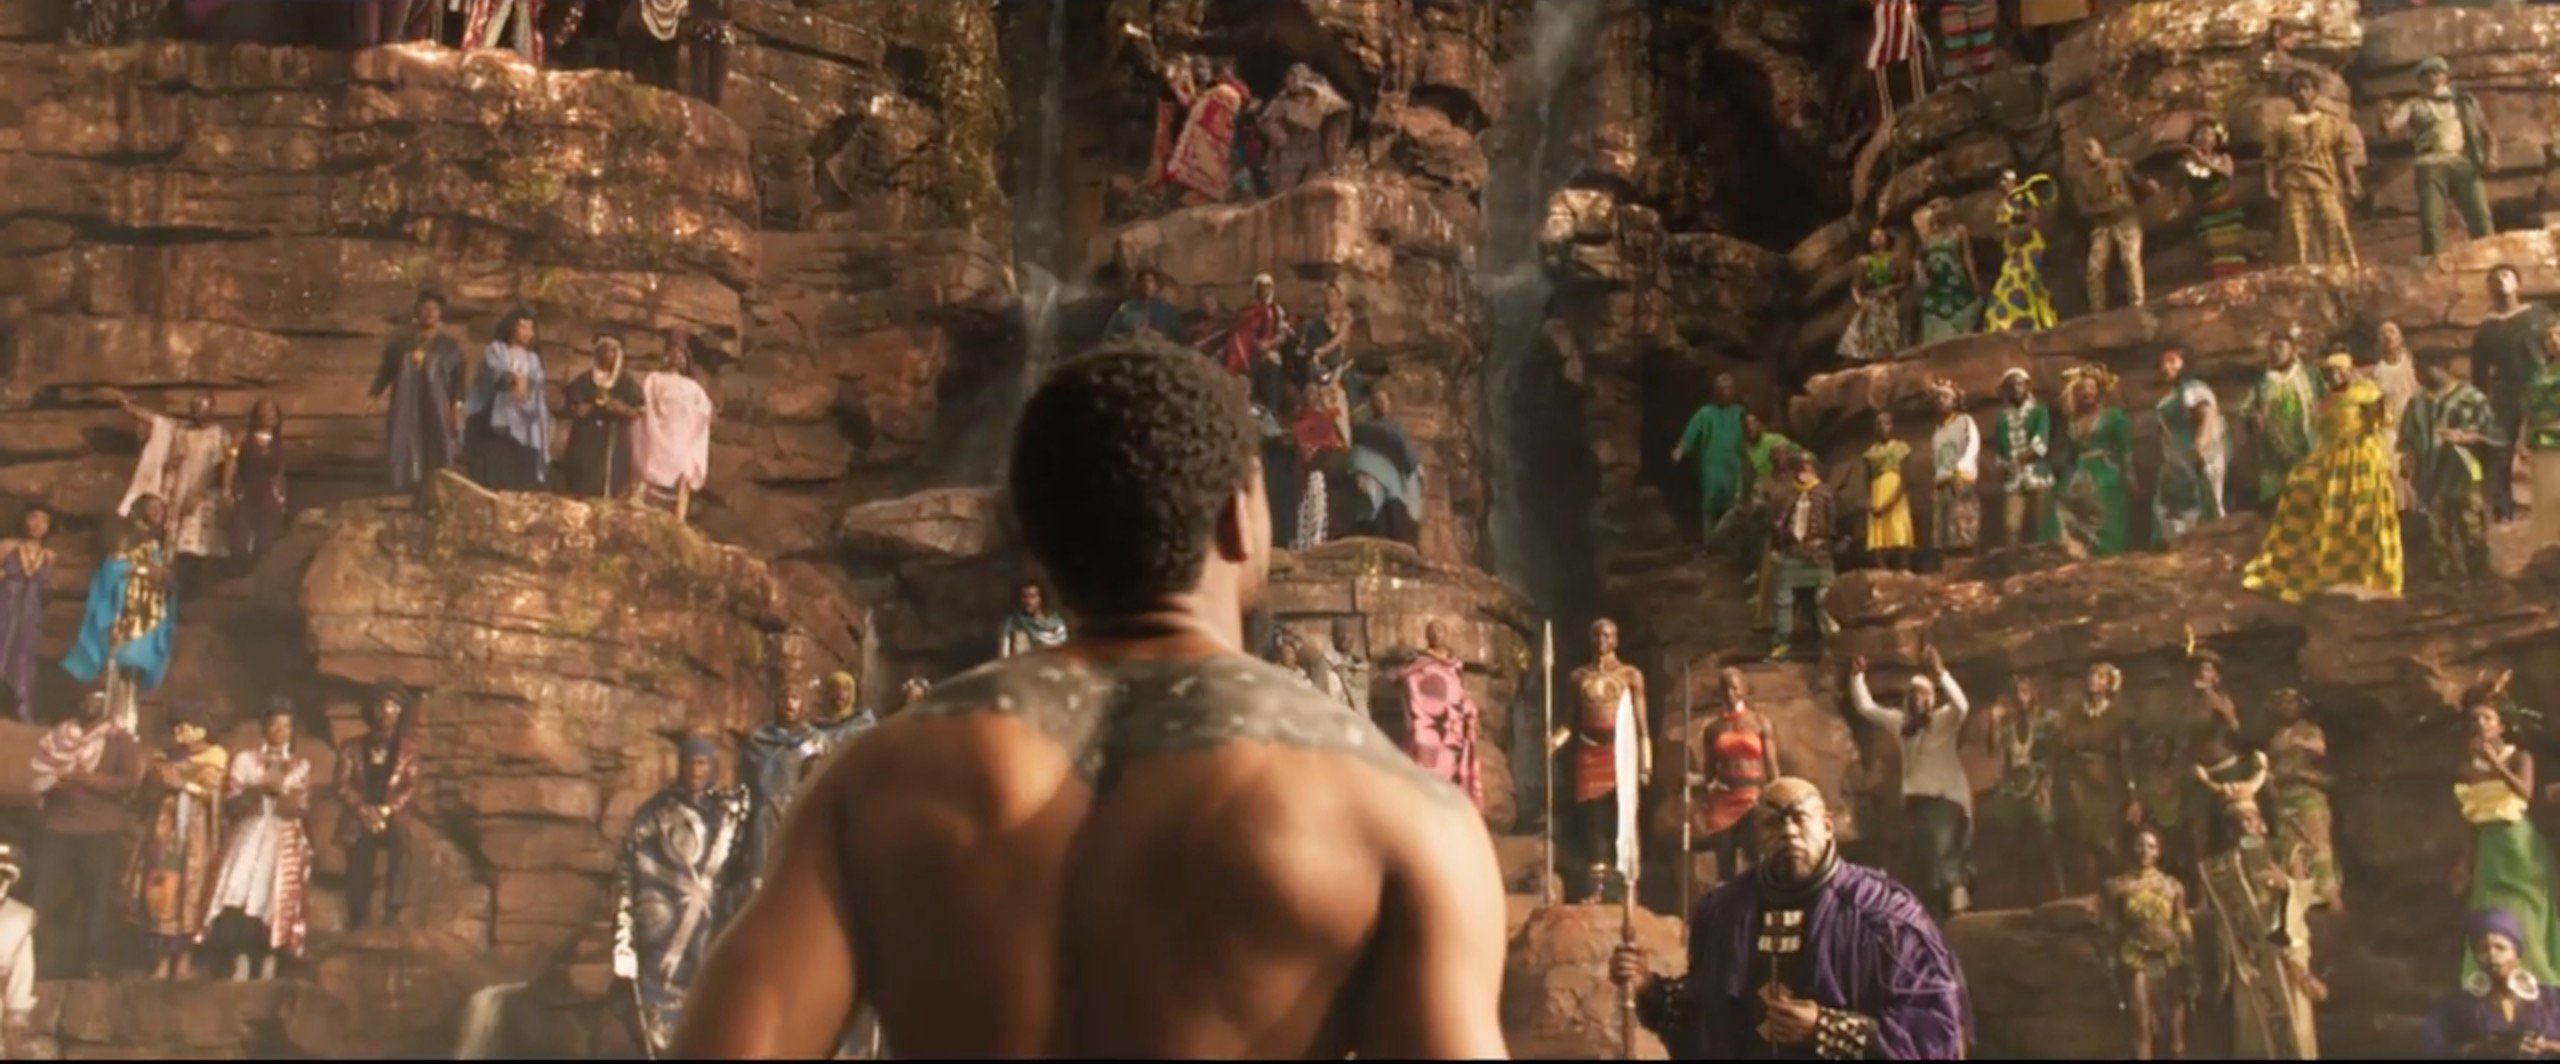 Scene from Black Panther of ritual fight showing actor Chadwick Bozeman looking up cliff where tribal leaders watch courtesy Marvel Studios